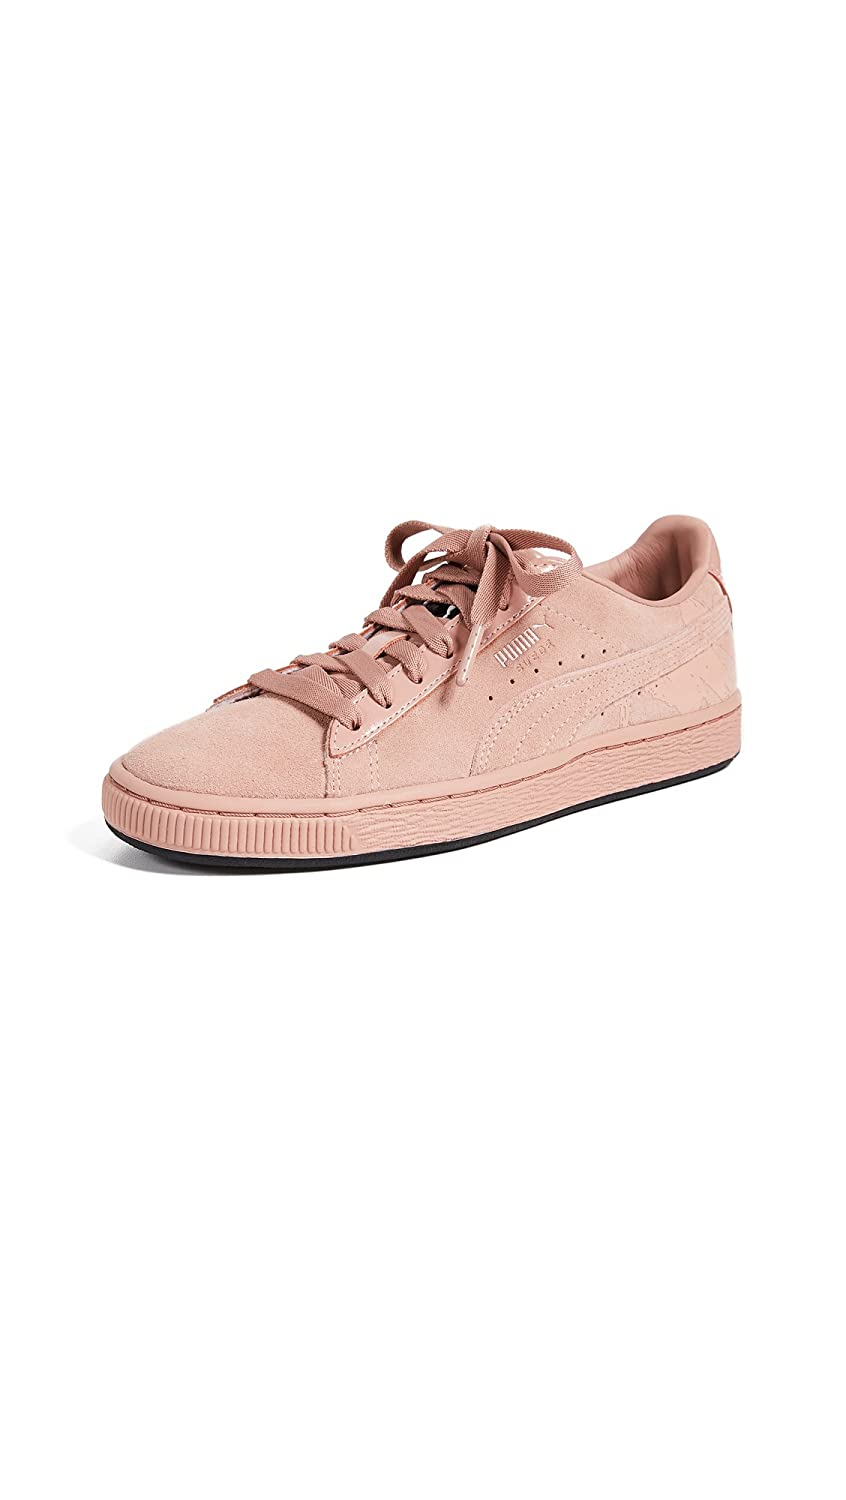 PUMA Women's x MAC ONE Classic Sneakers B07B4K8MQ7 8 B(M) US|Muted Clay/Muted Clay